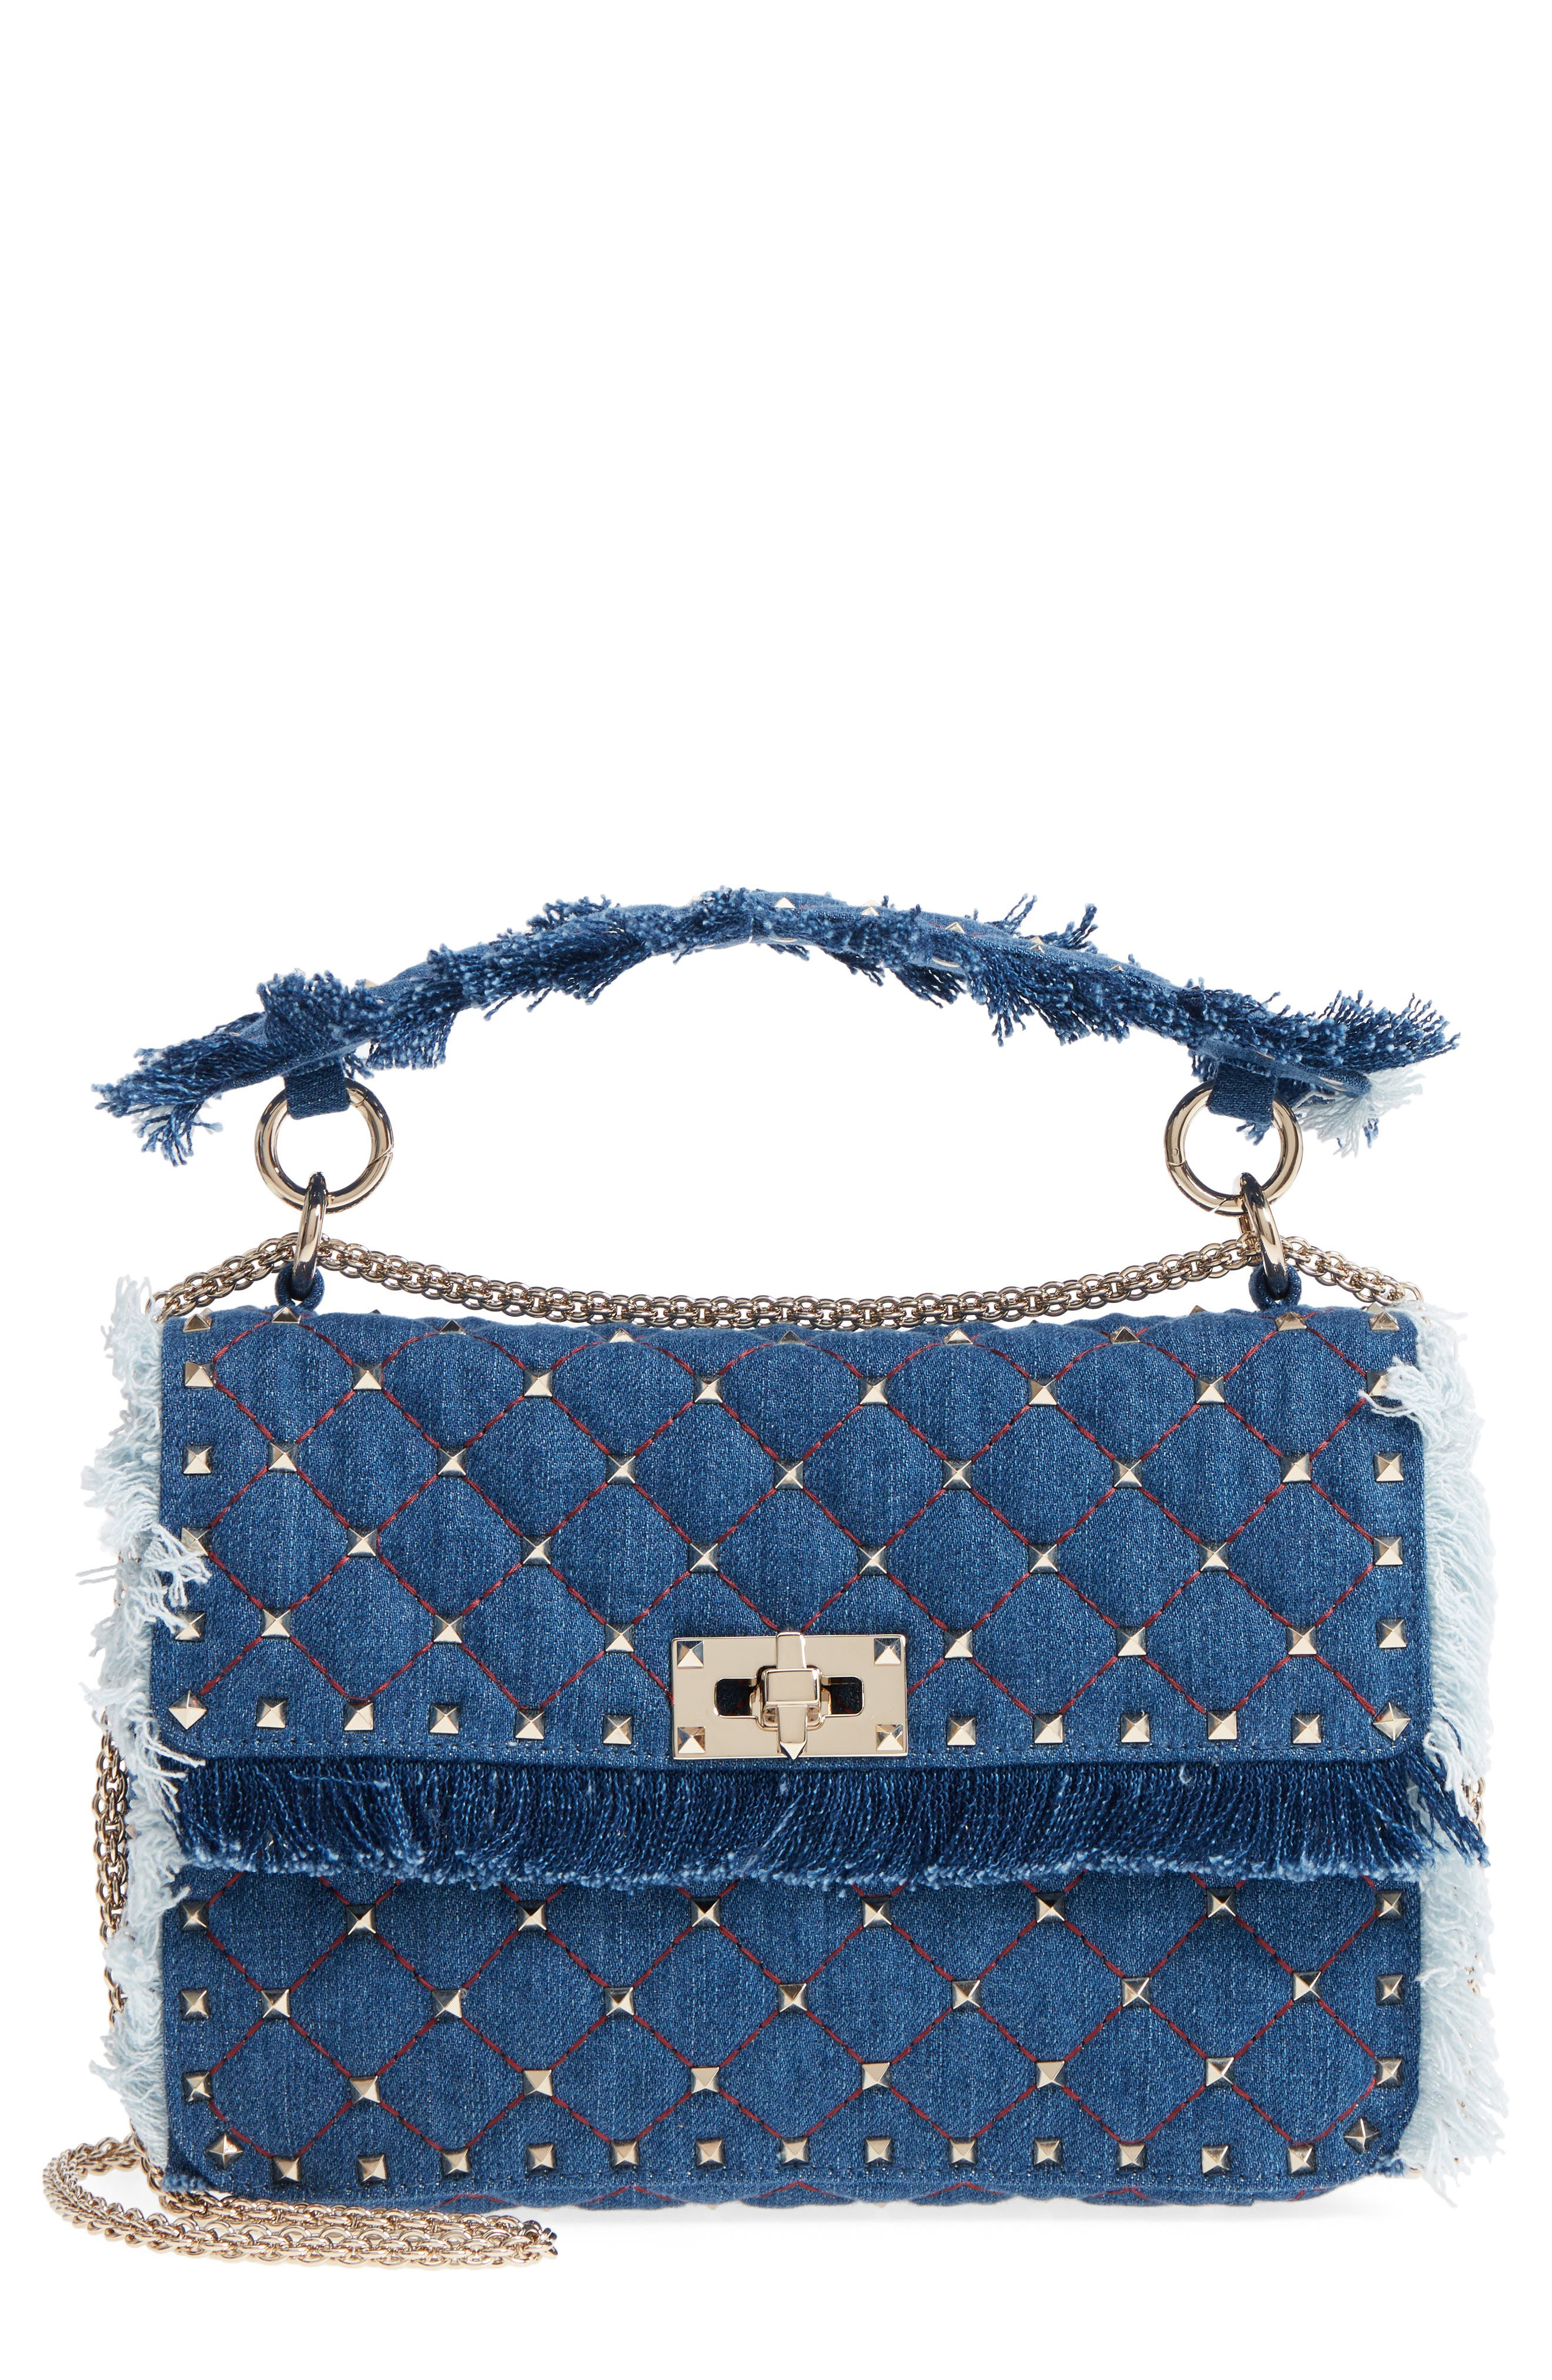 Rockstud Spike Medium Shoulder Bag,                             Main thumbnail 1, color,                             DENIM